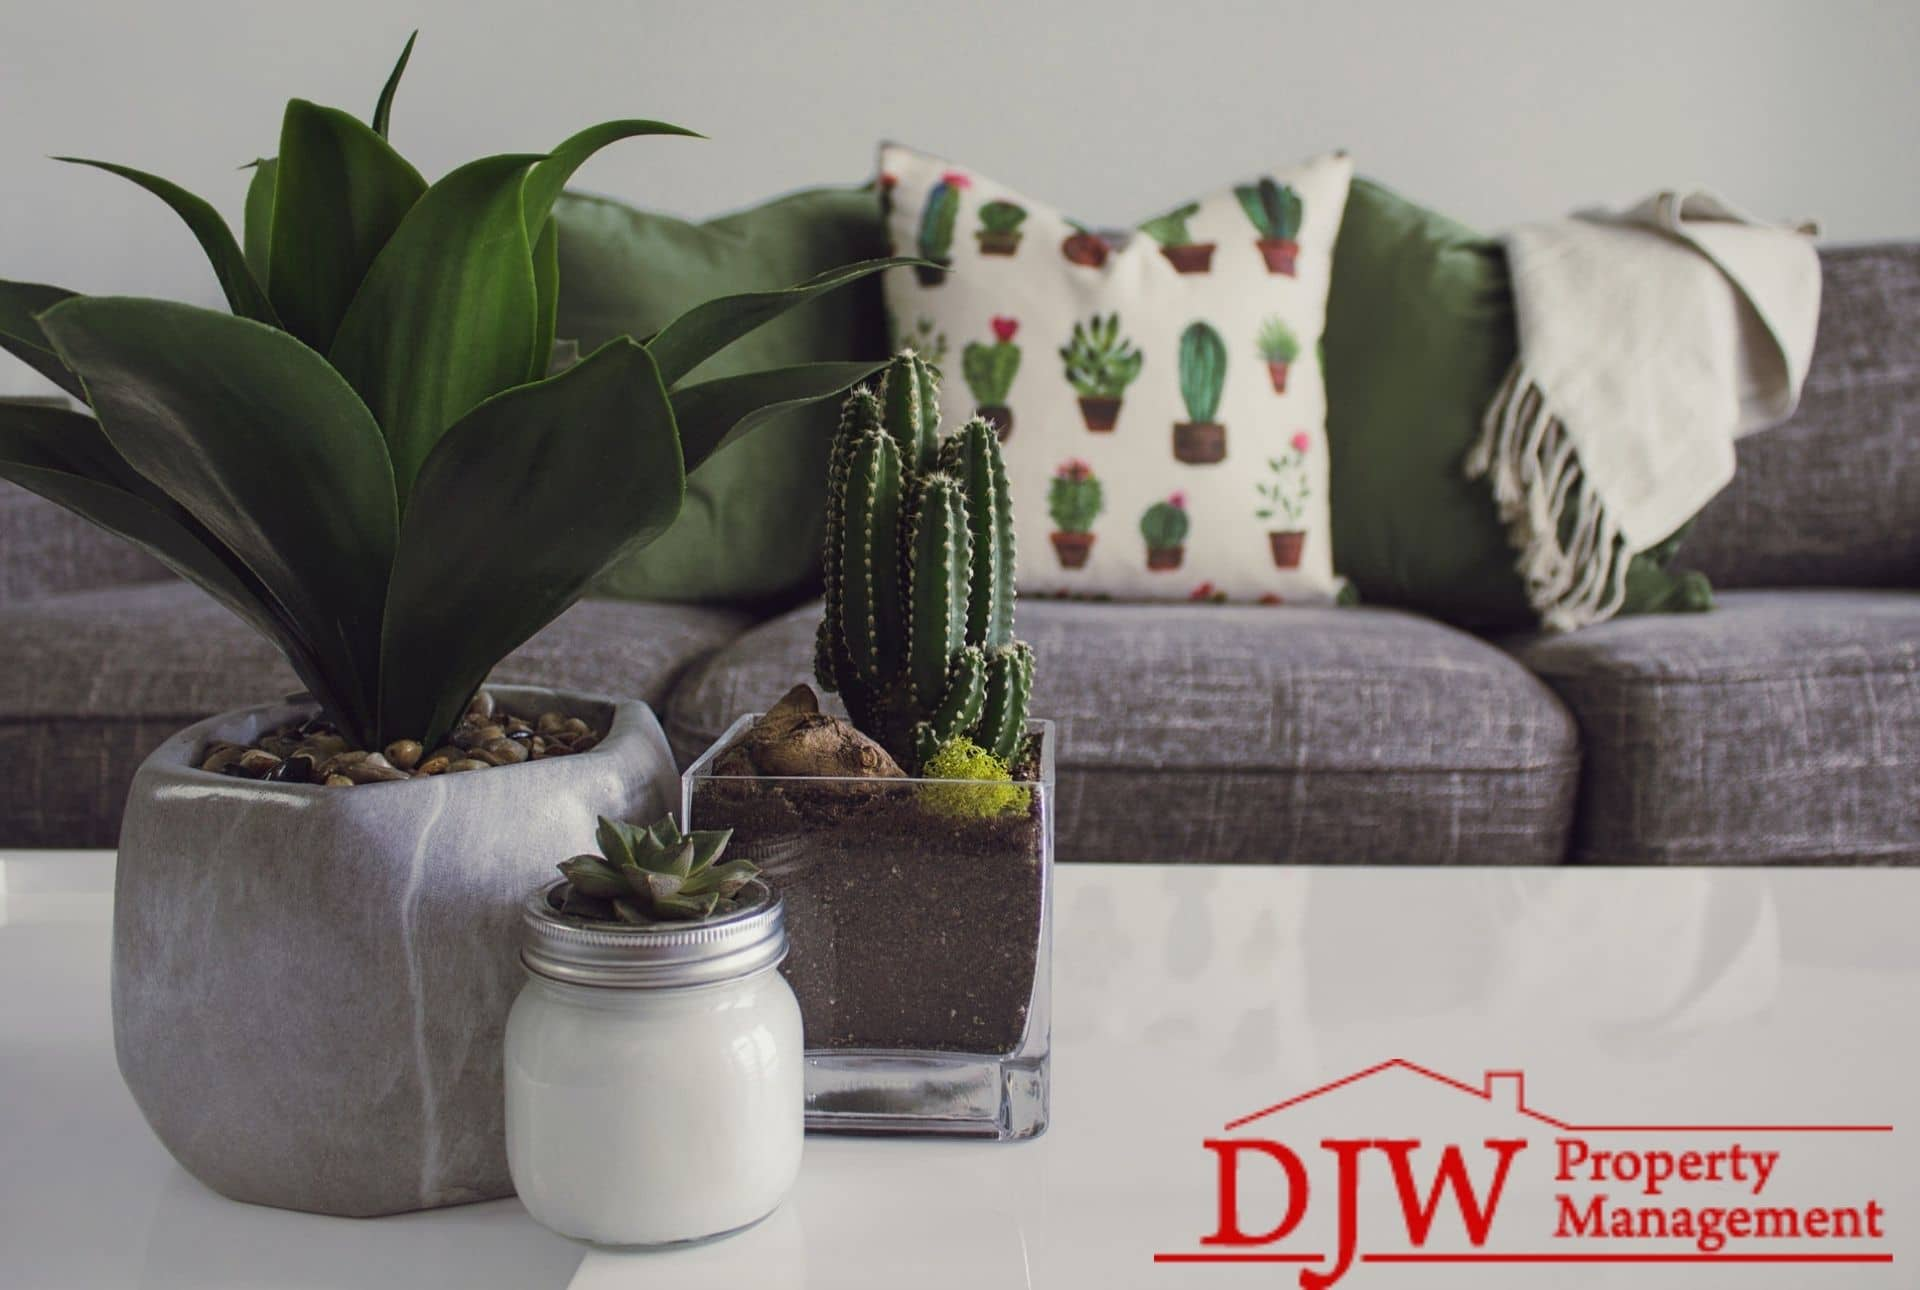 Succulents sit on a white coffee table; a grey couch is visible in the background with throw pillows and a cozy blanket.